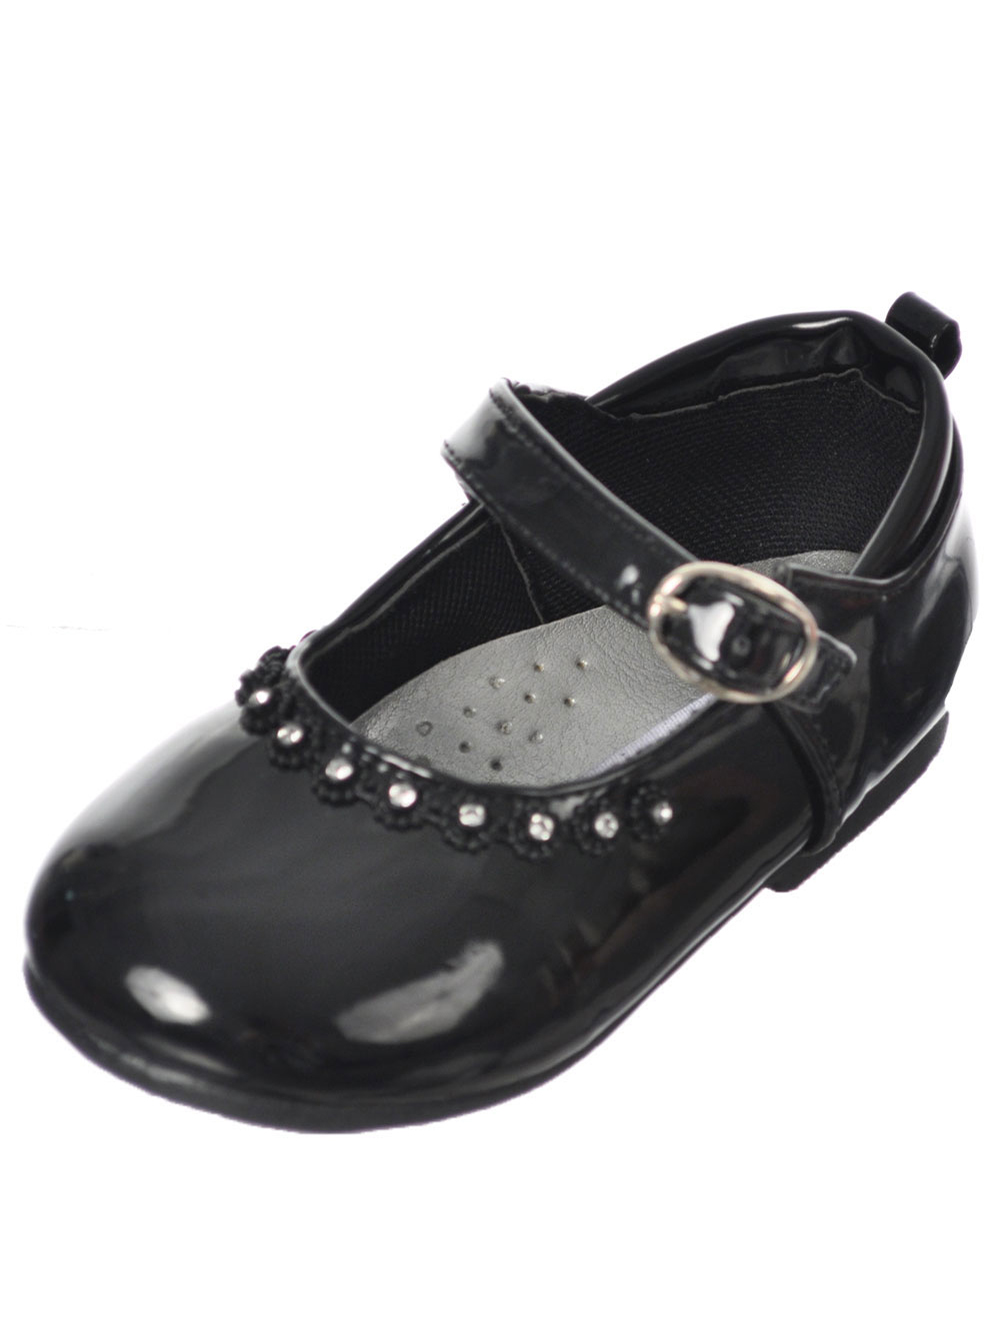 Tendertoes Bejeweled Mary Jane Shoes (Infant Girls Sizes 2 - 6) - black, 5 infant